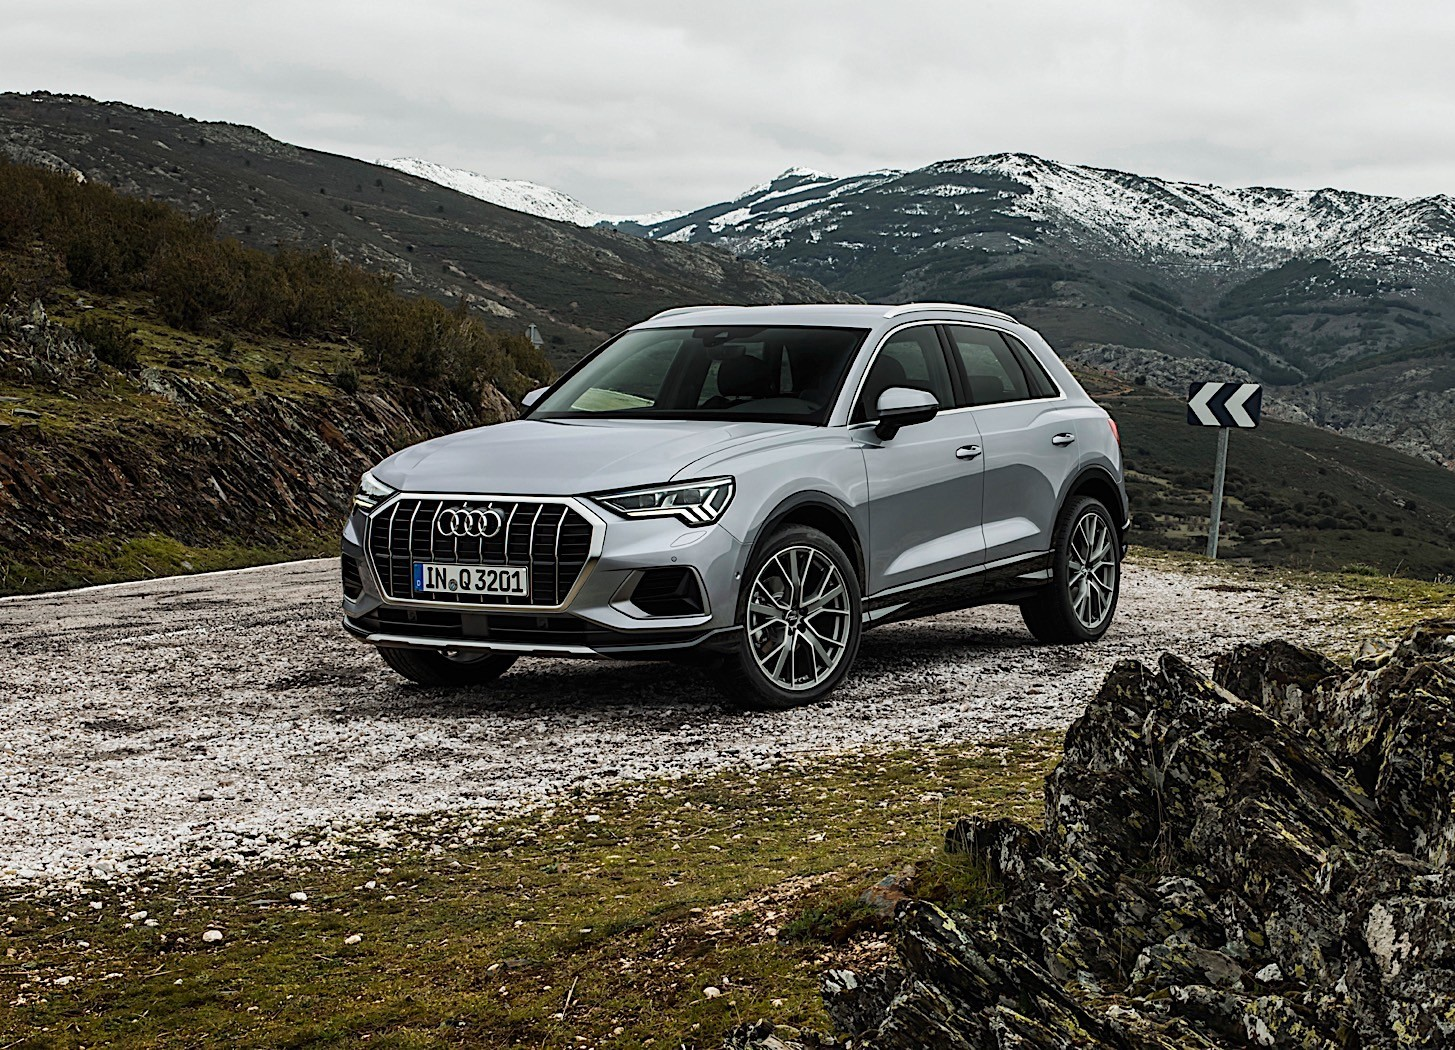 2019 audi q3 priced from 33 700 eur sales start announced. Black Bedroom Furniture Sets. Home Design Ideas